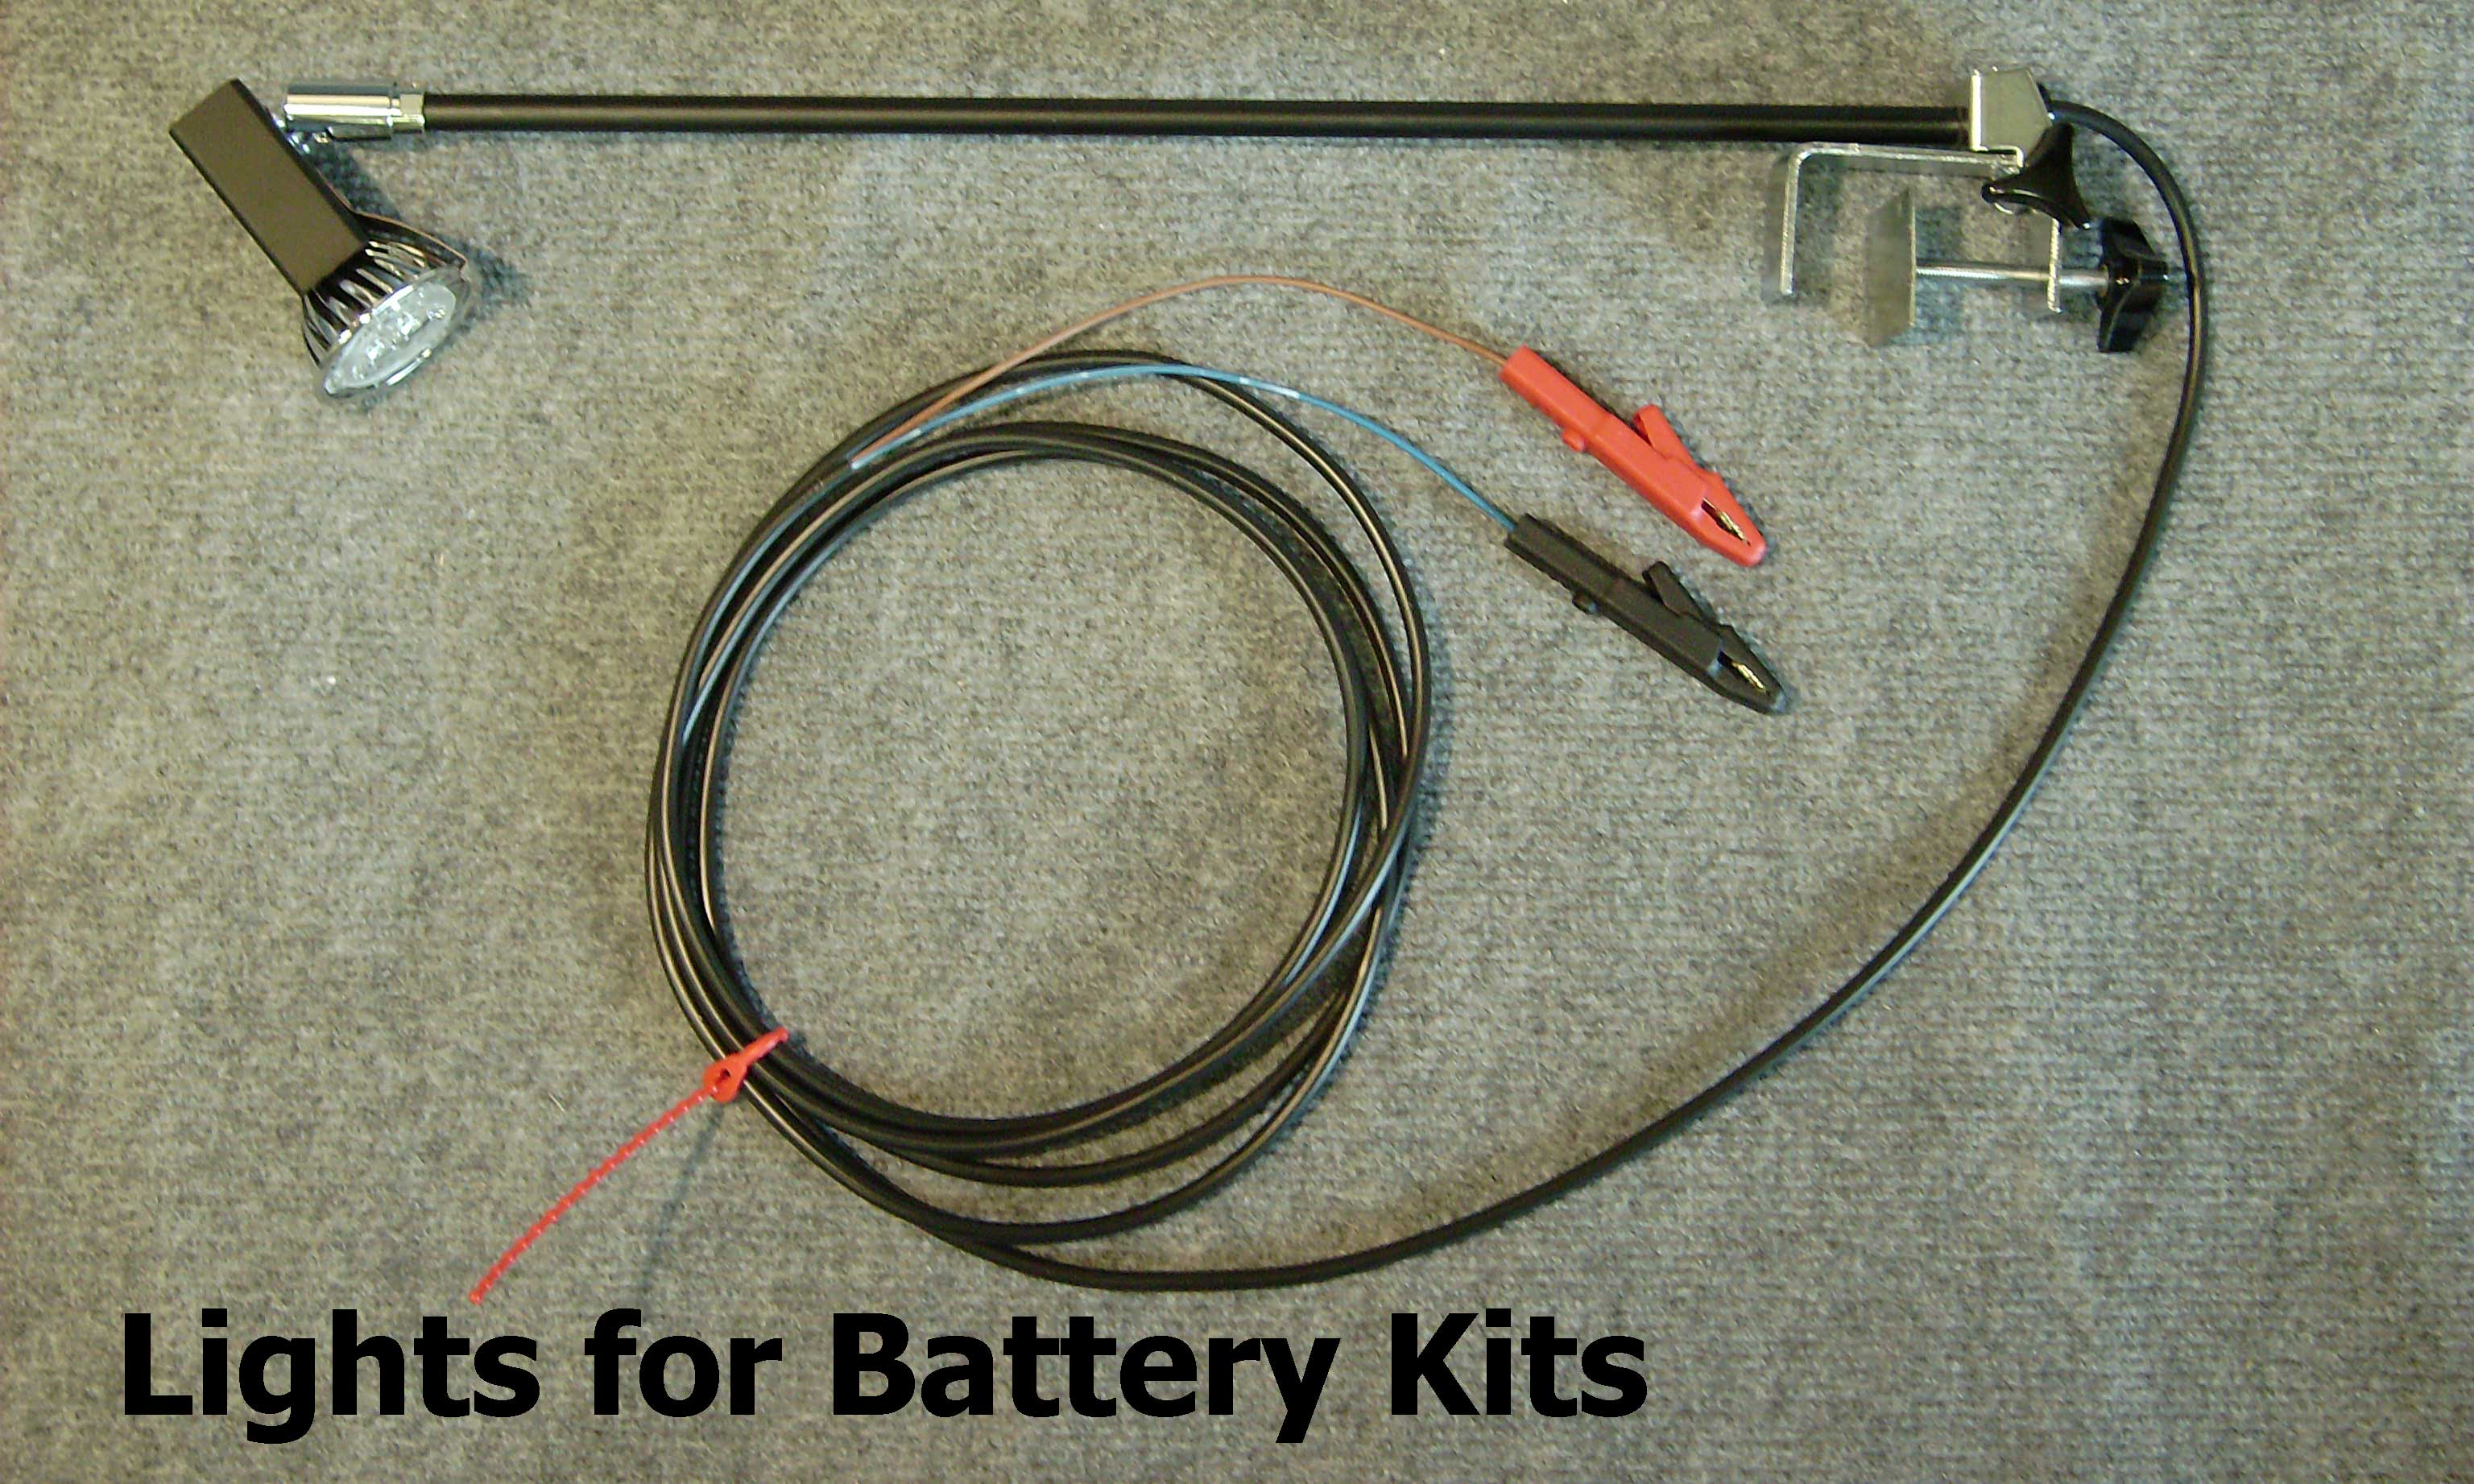 Lights for Battery Kits